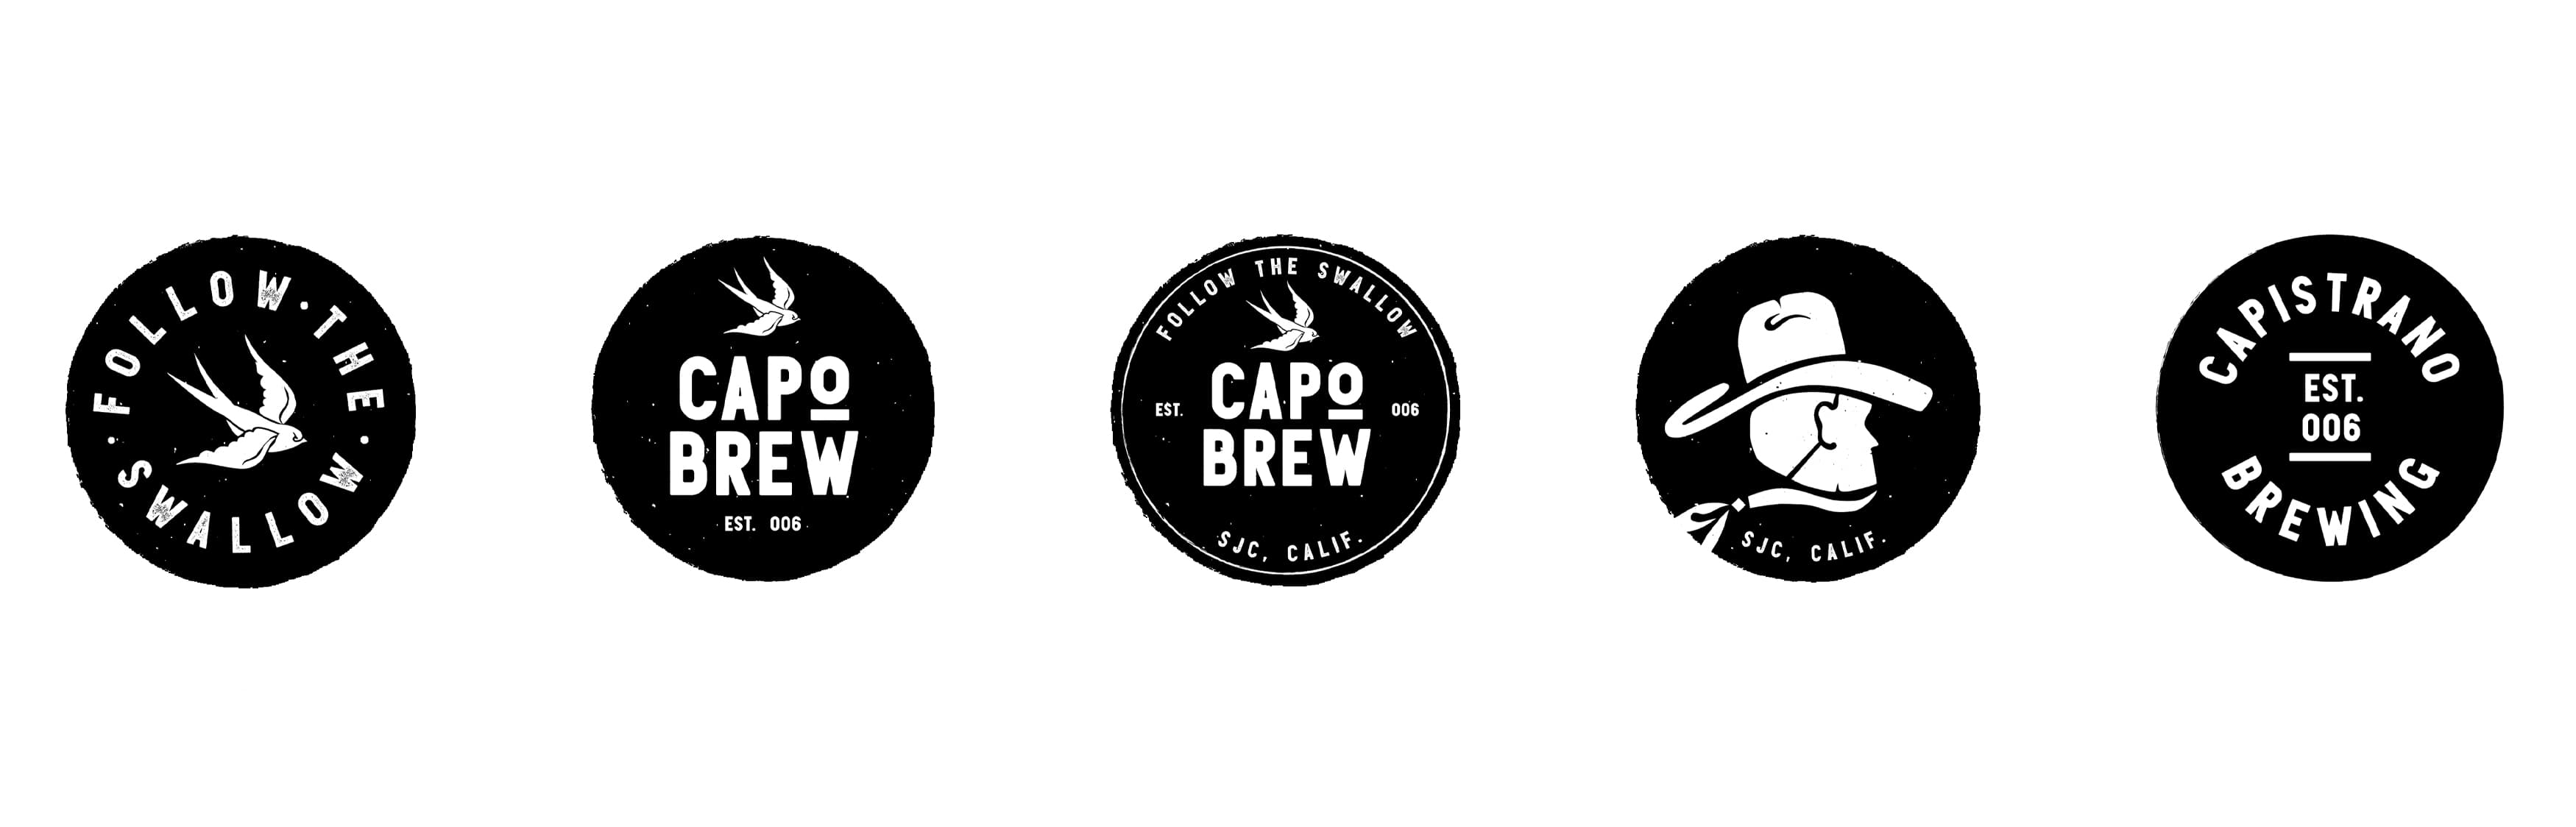 Capo Brew, a brewery located in the historic San Juan Capistrano, California, worked with RSM Design to craft a brand identity that conveyed its historic roots and cowboy personality. Secondary brand buttons.